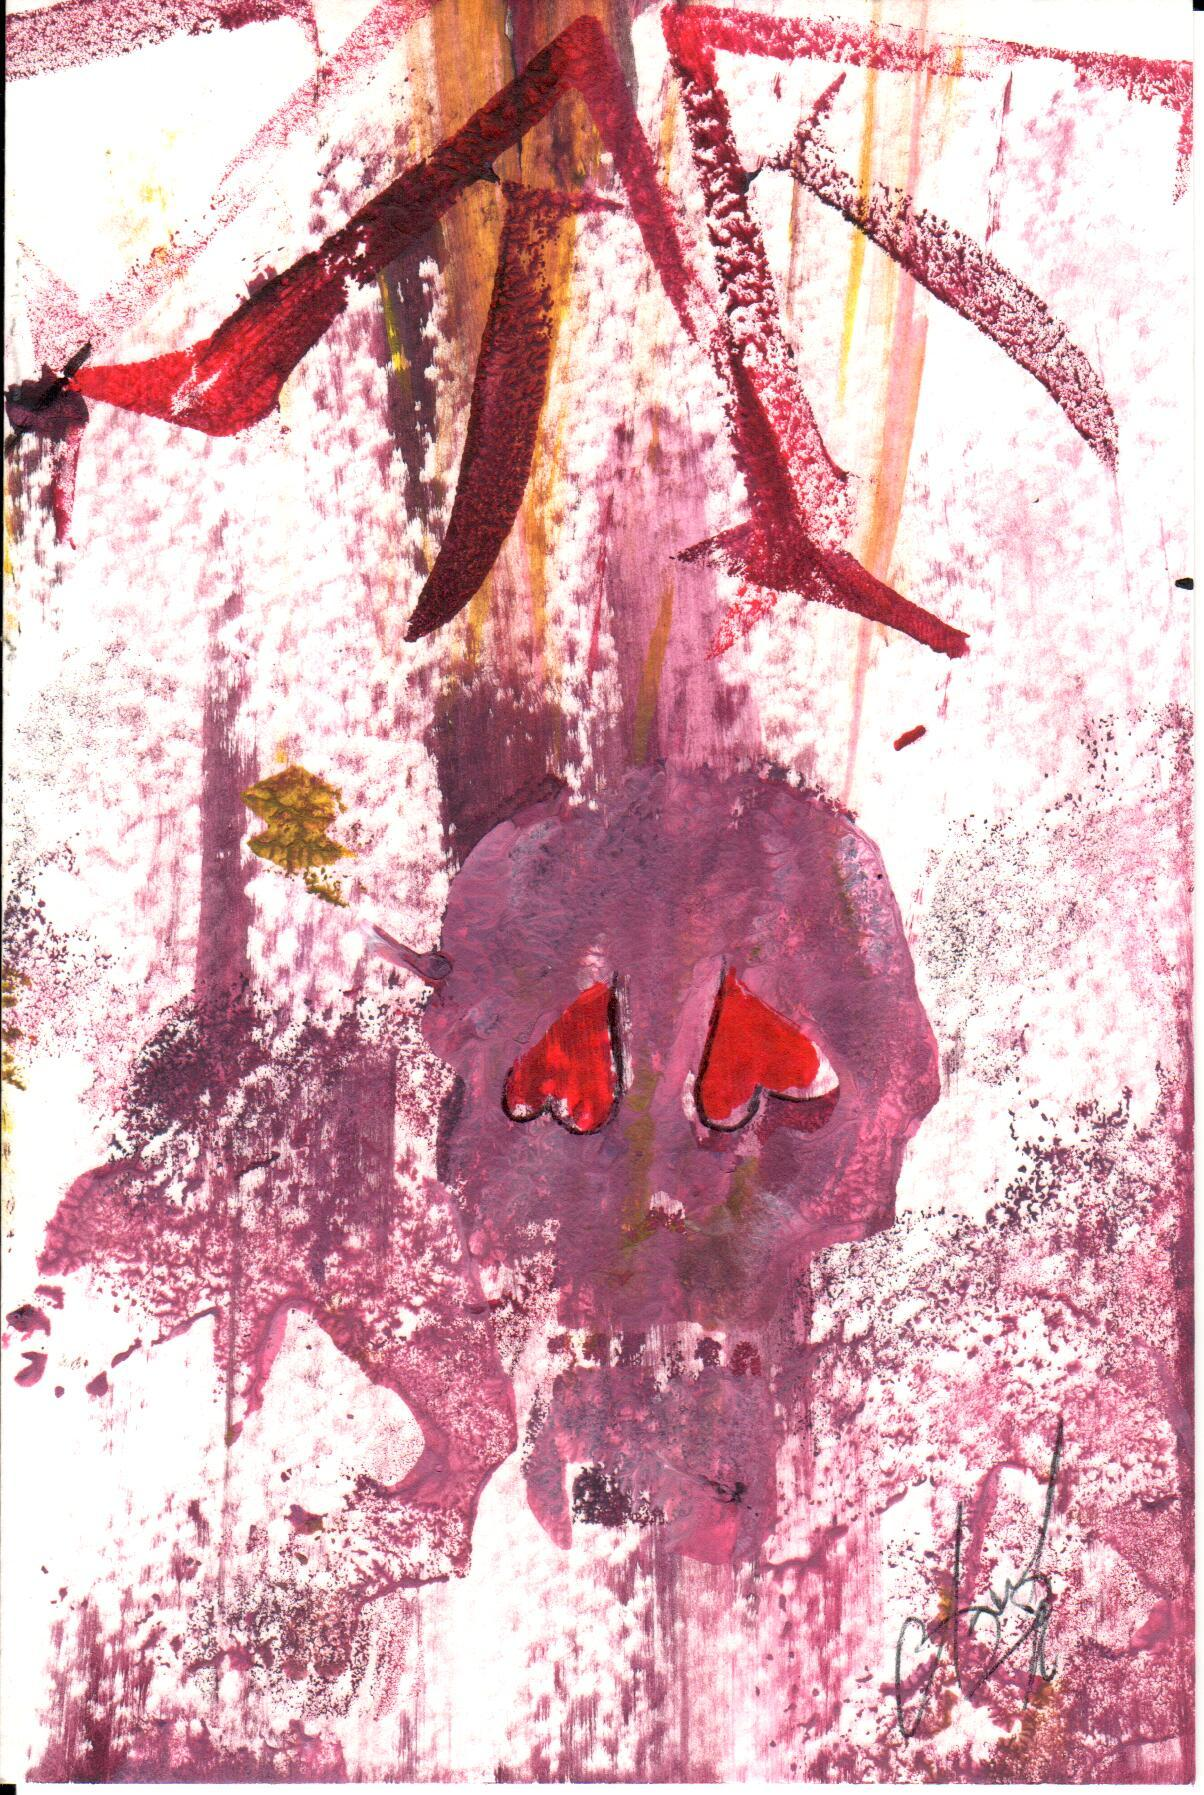 Anand Pink Skull front.jpg